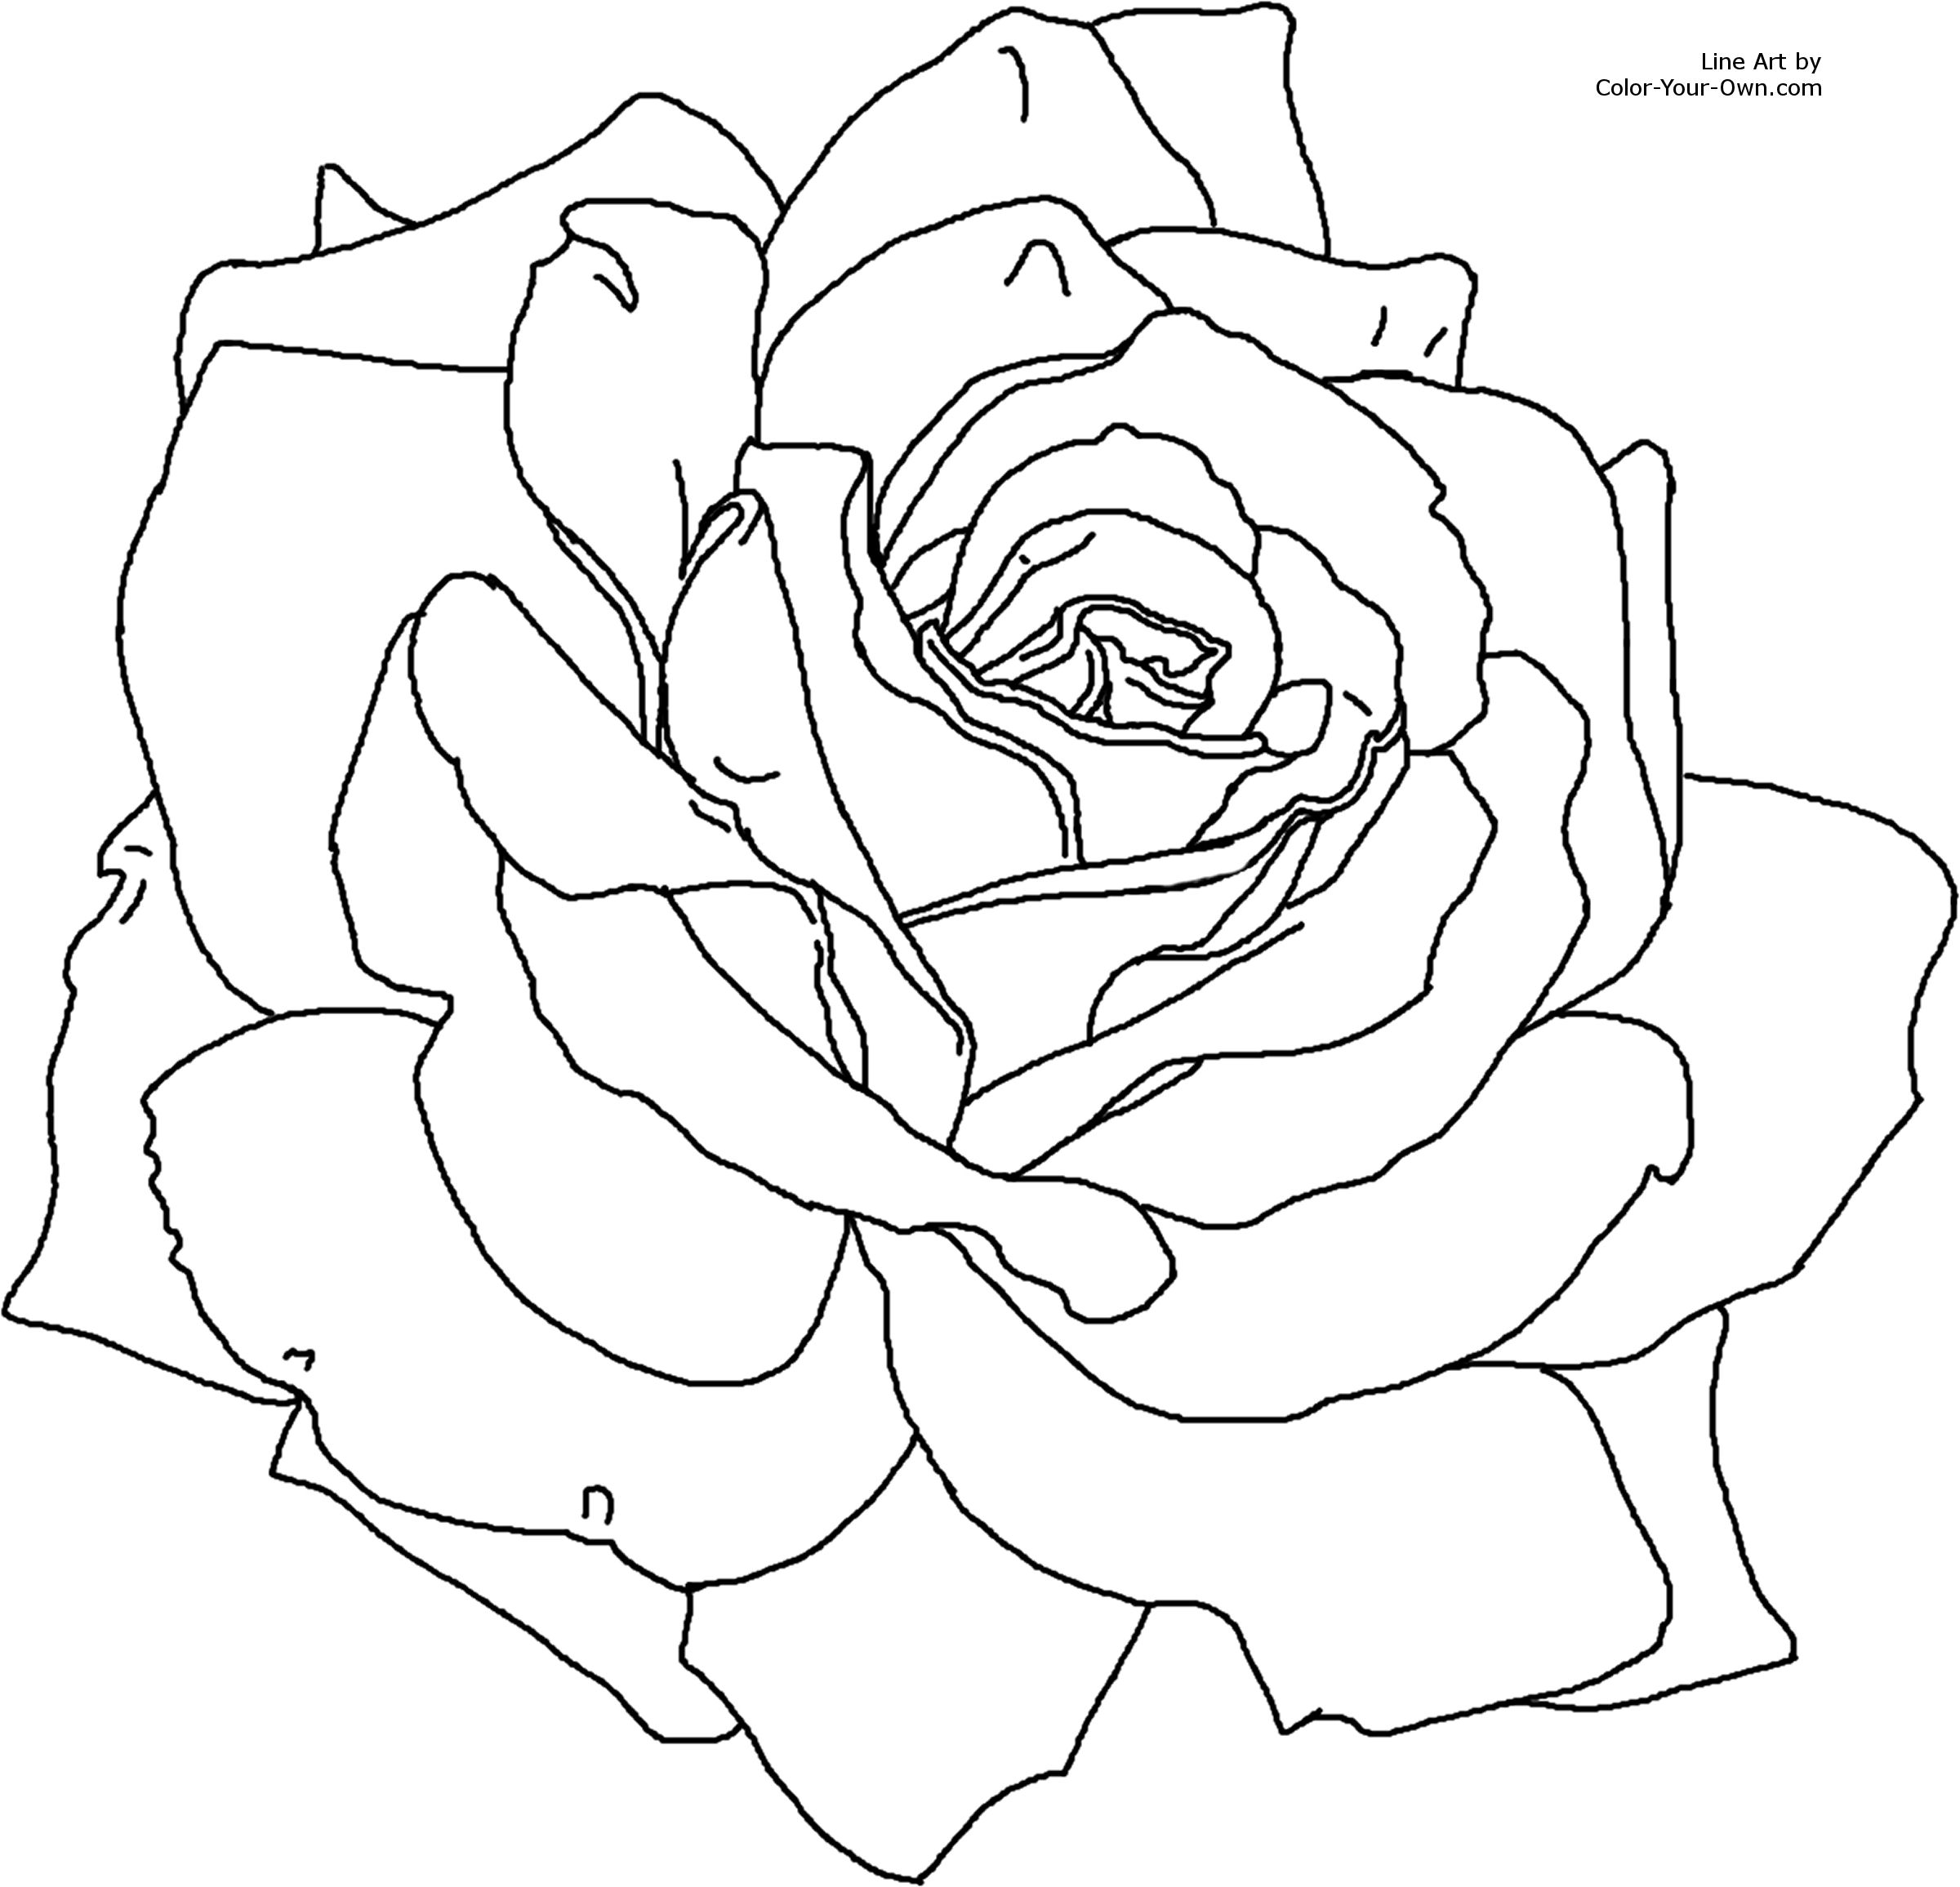 Free Coloring Pages Of Line Drawings Of Roses Roses Colouring Pages